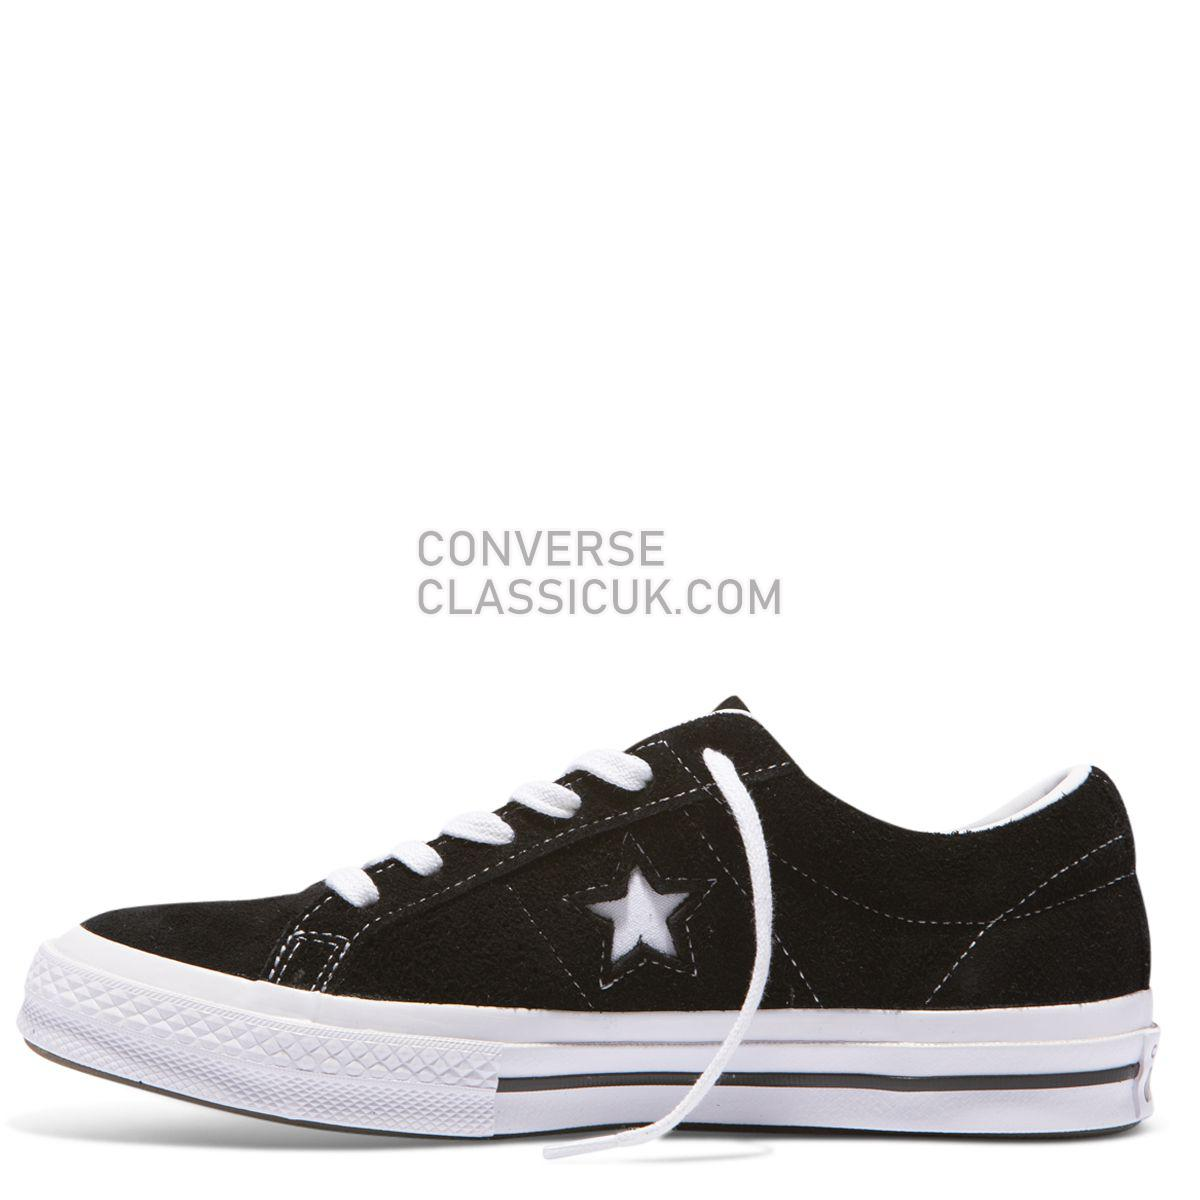 Converse One Star Premium Suede Low Top Black Mens Womens Unisex 158369 Black/White Shoes